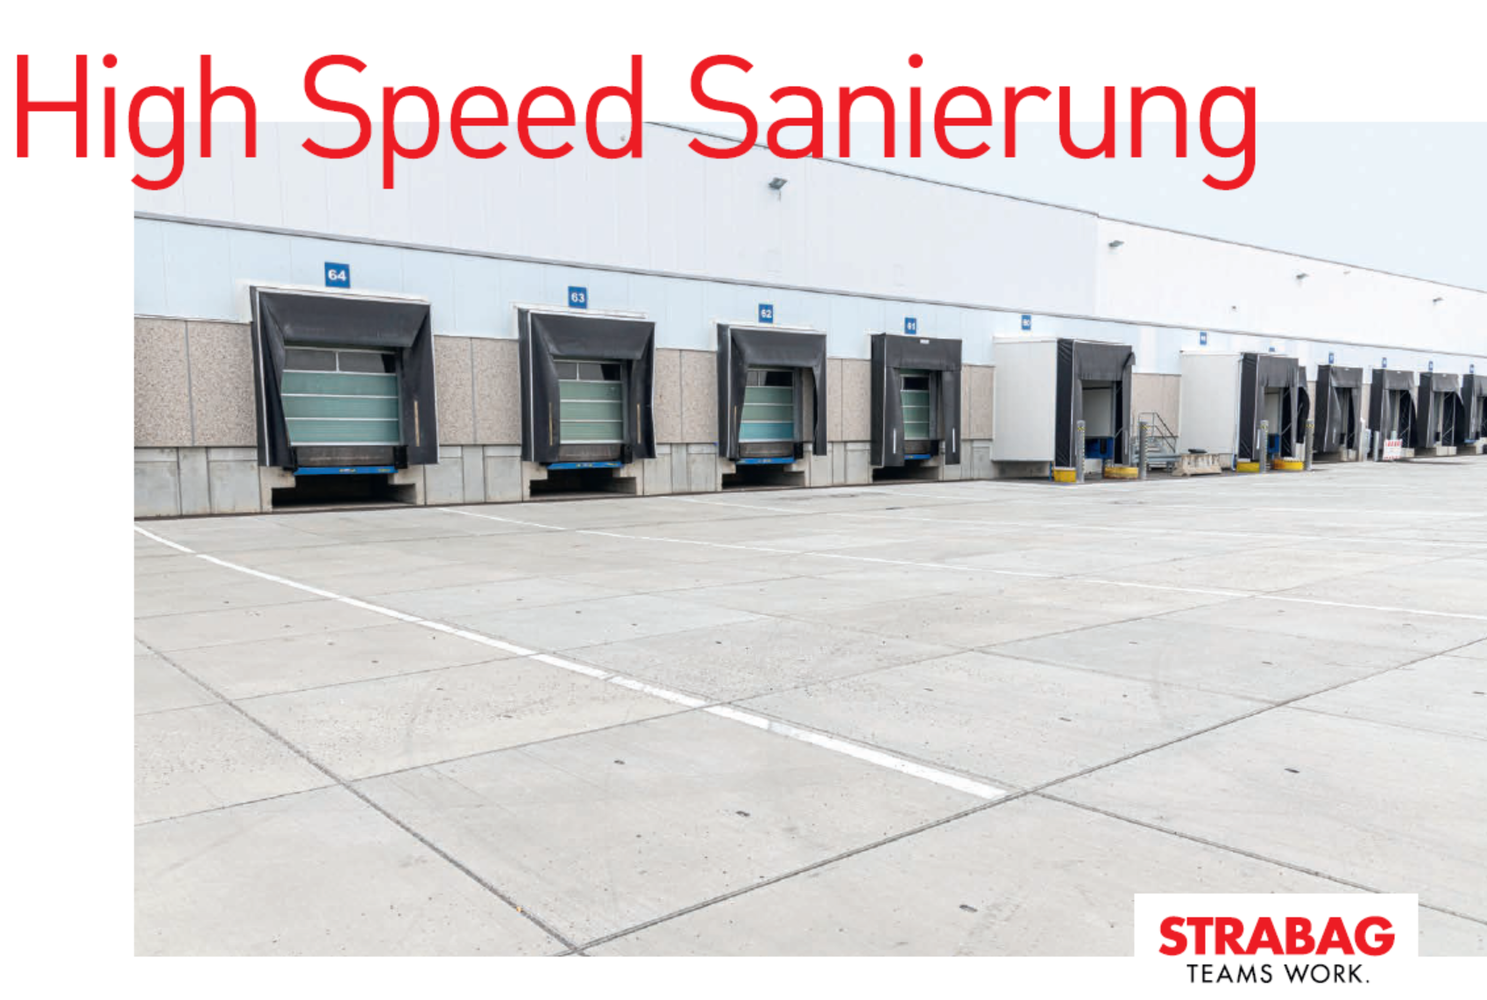 HIGH SPEED SANIERUNG